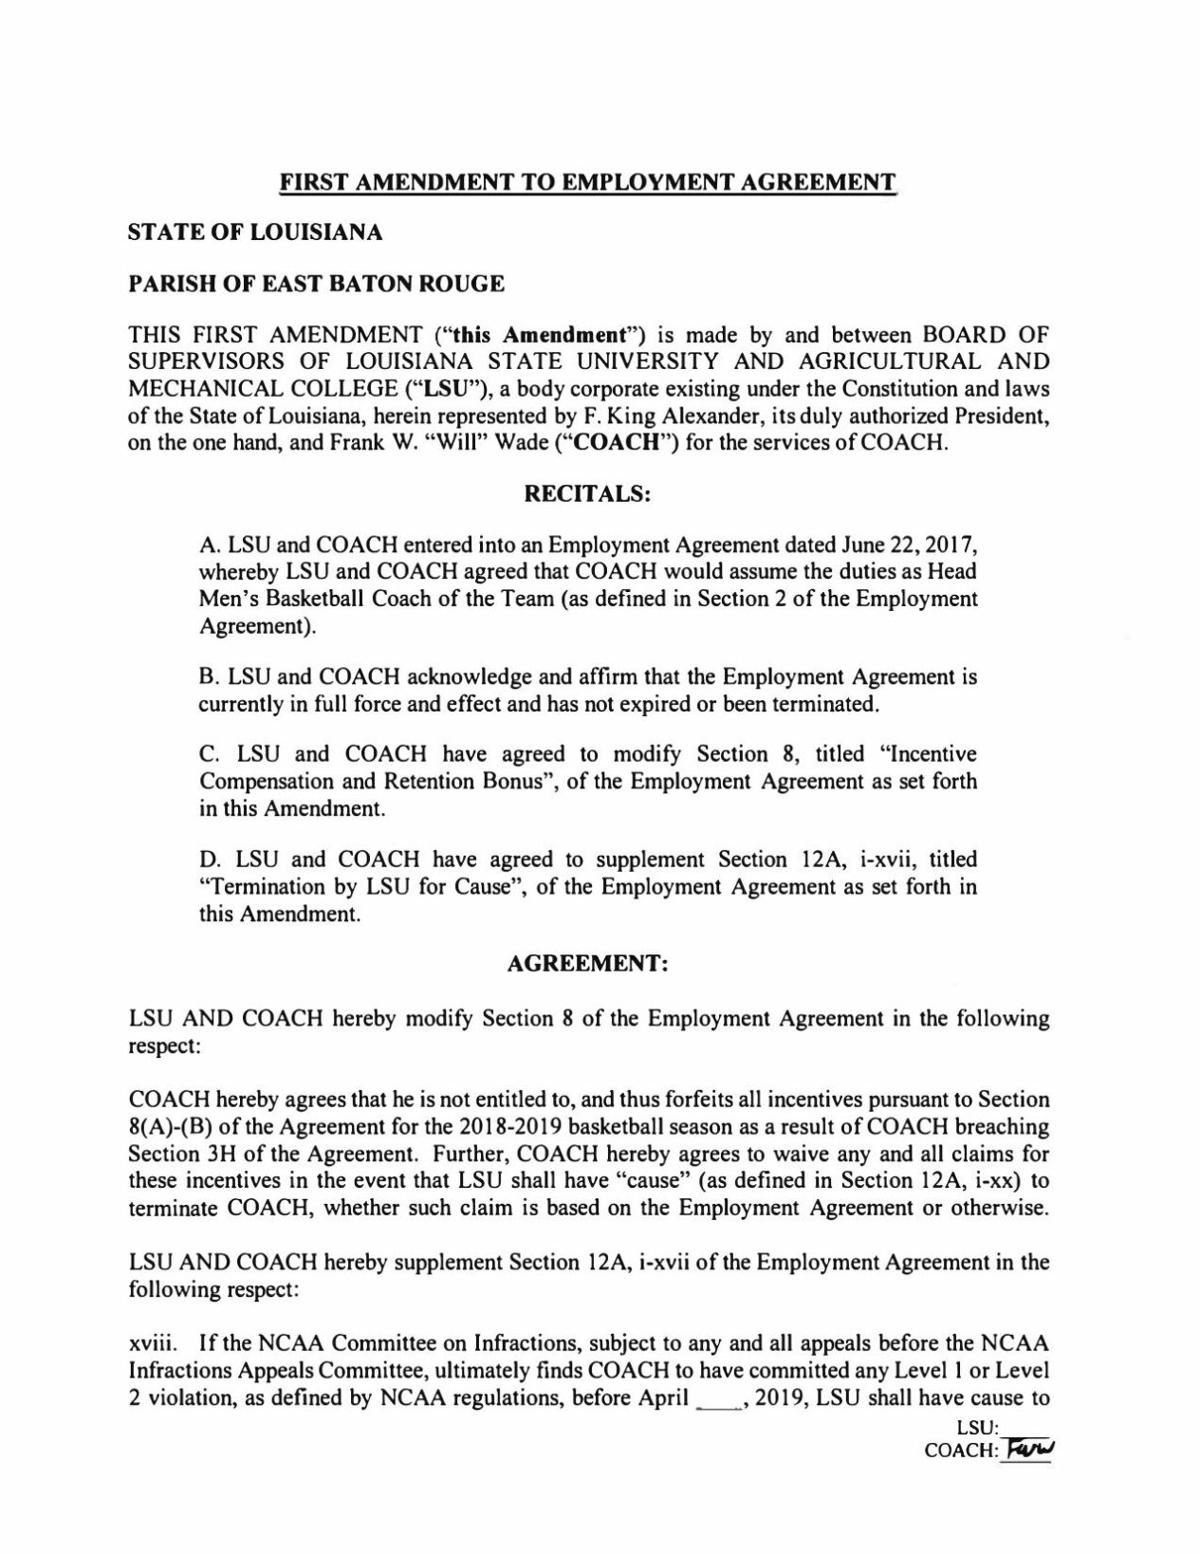 PDF: Amendment to Will Wade's contract